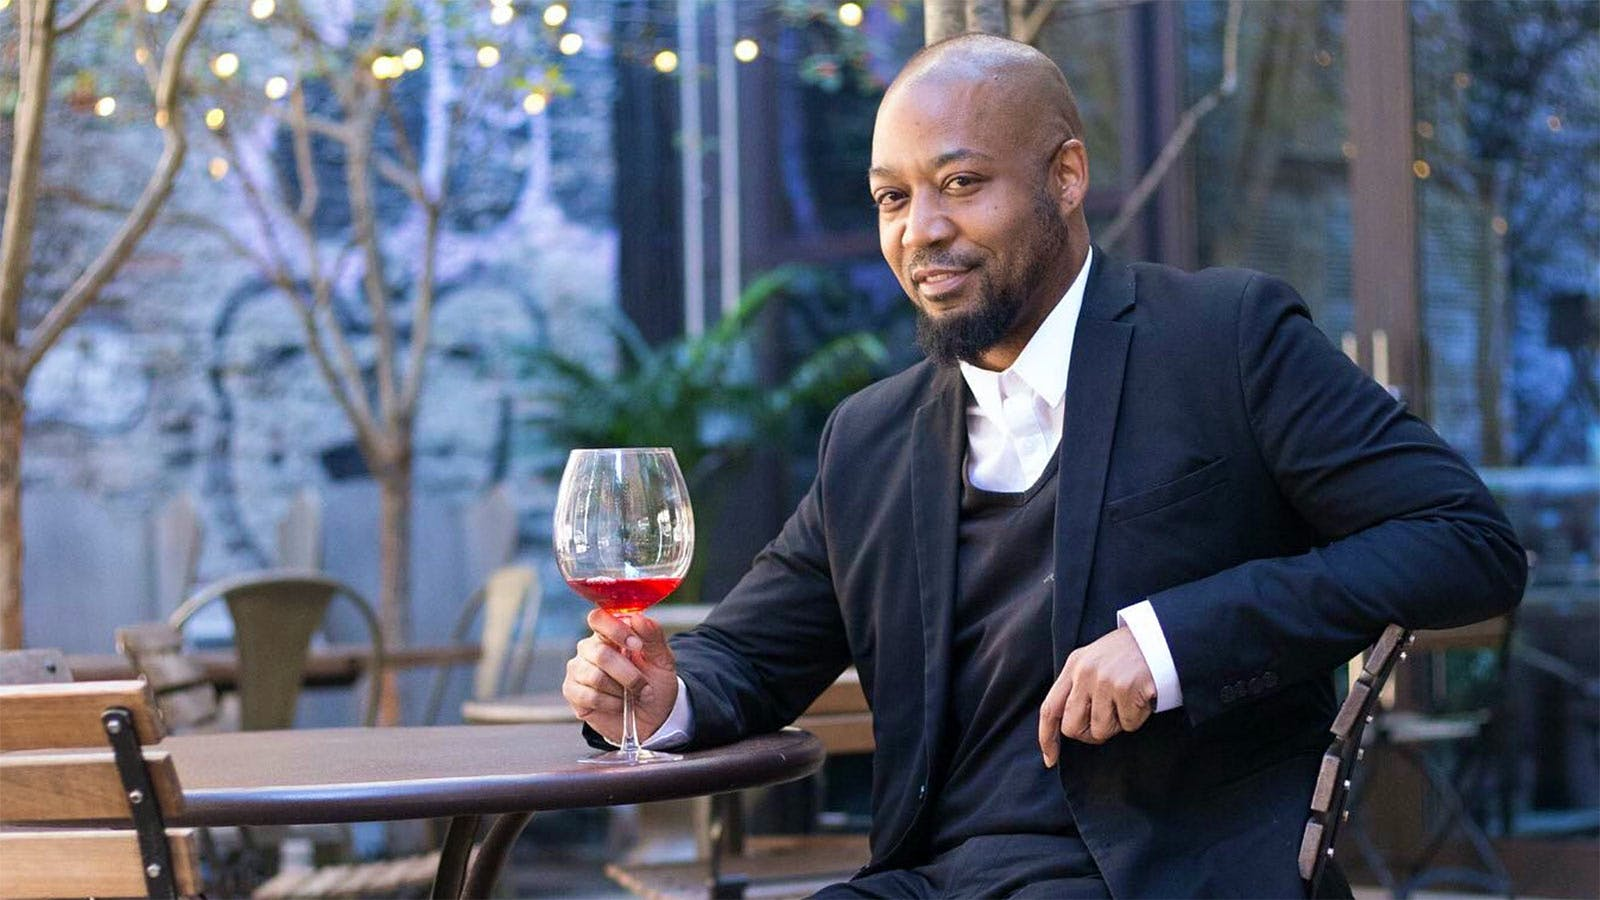 Wine Talk: Charles Springfield's Personal Tune